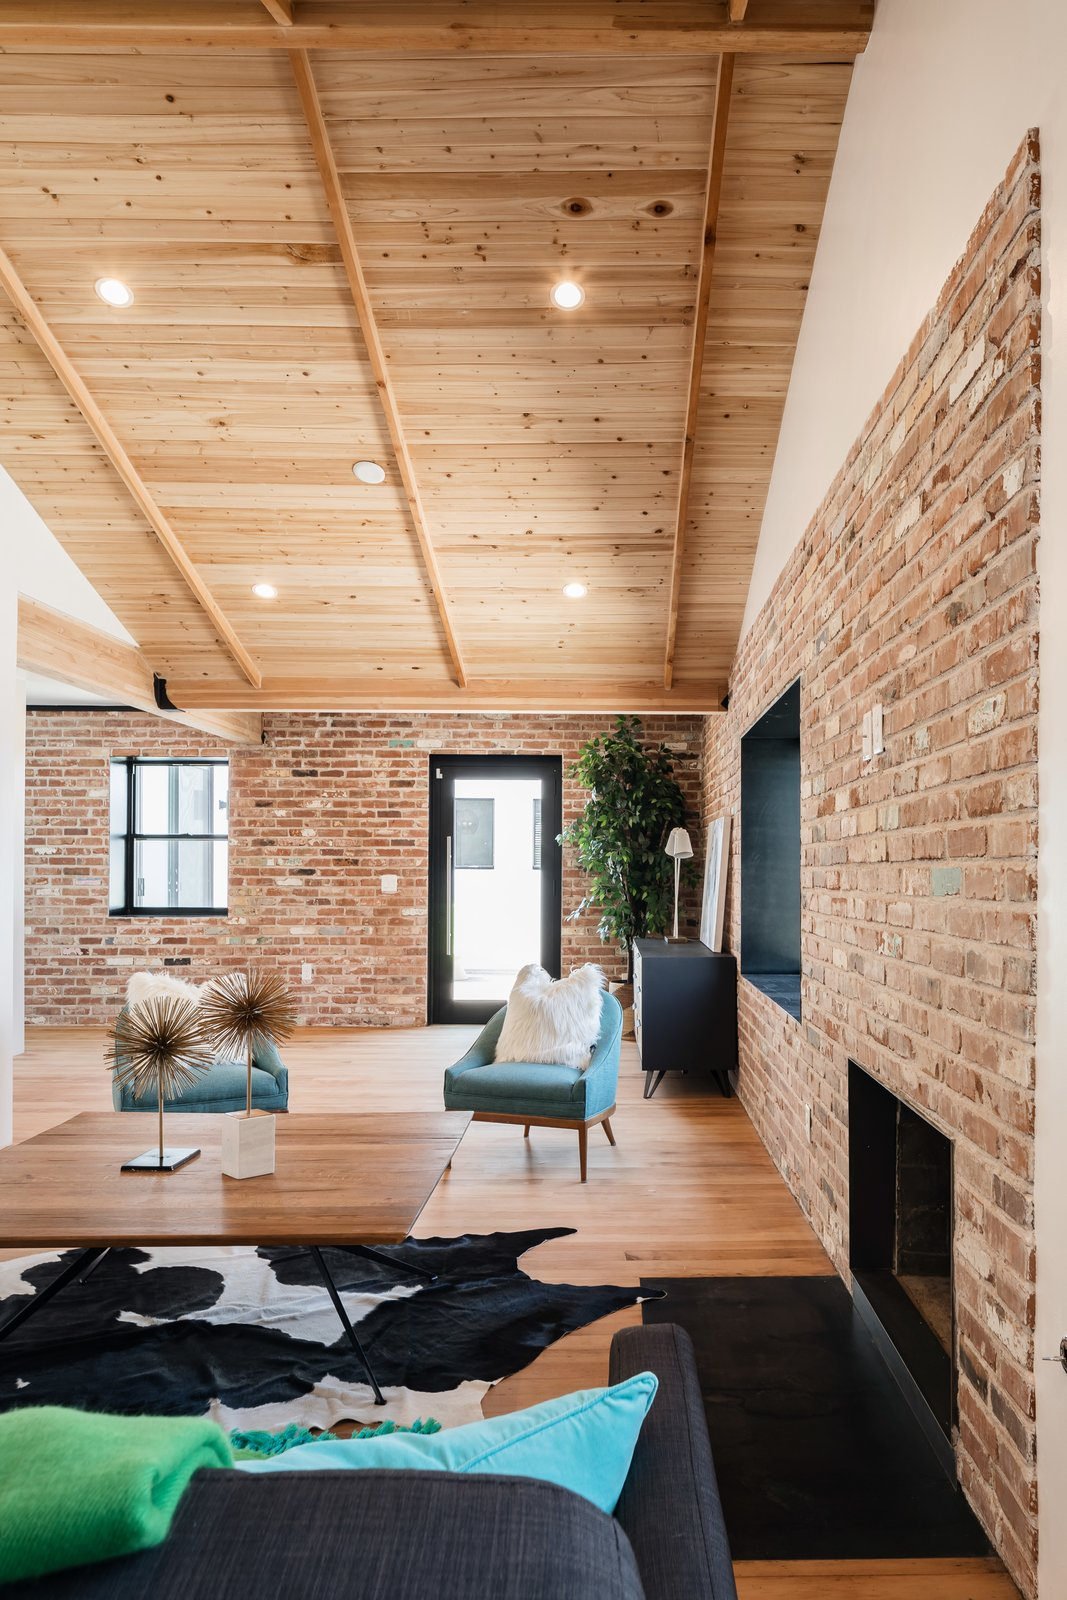 Living Room, Coffee Tables, Recessed Lighting, Standard Layout Fireplace, Ceiling Lighting, Sofa, Chair, and Medium Hardwood Floor  Photo 11 of 13 in In Arizona, a Modern Cube and Tumbledown 1930s Shack Make an Unlikely Couple